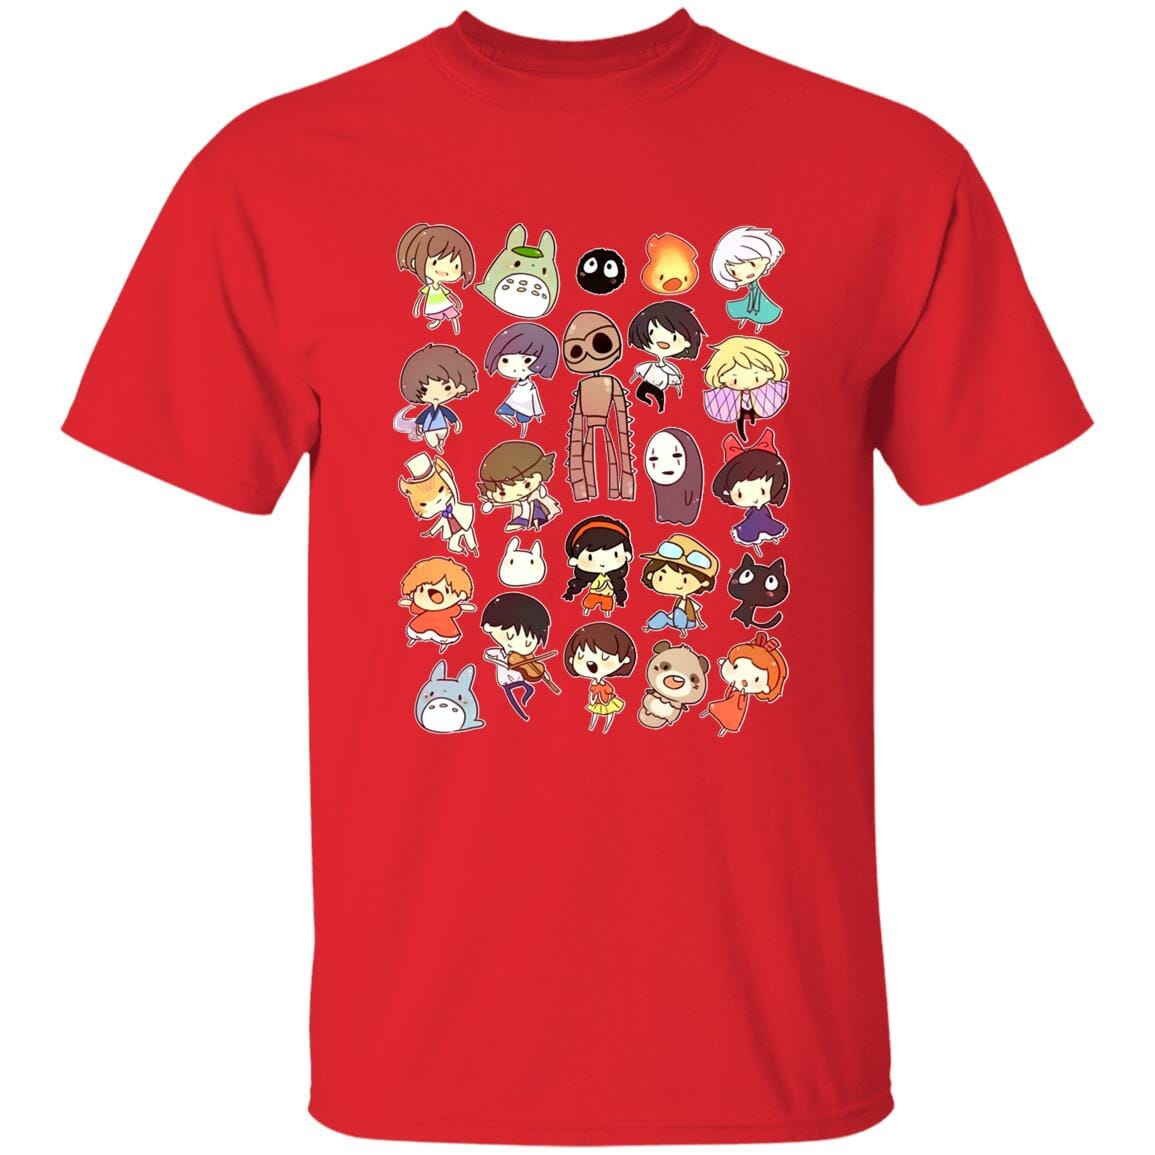 Ghibli Movie Characters Cute Chibi Collection T Shirt